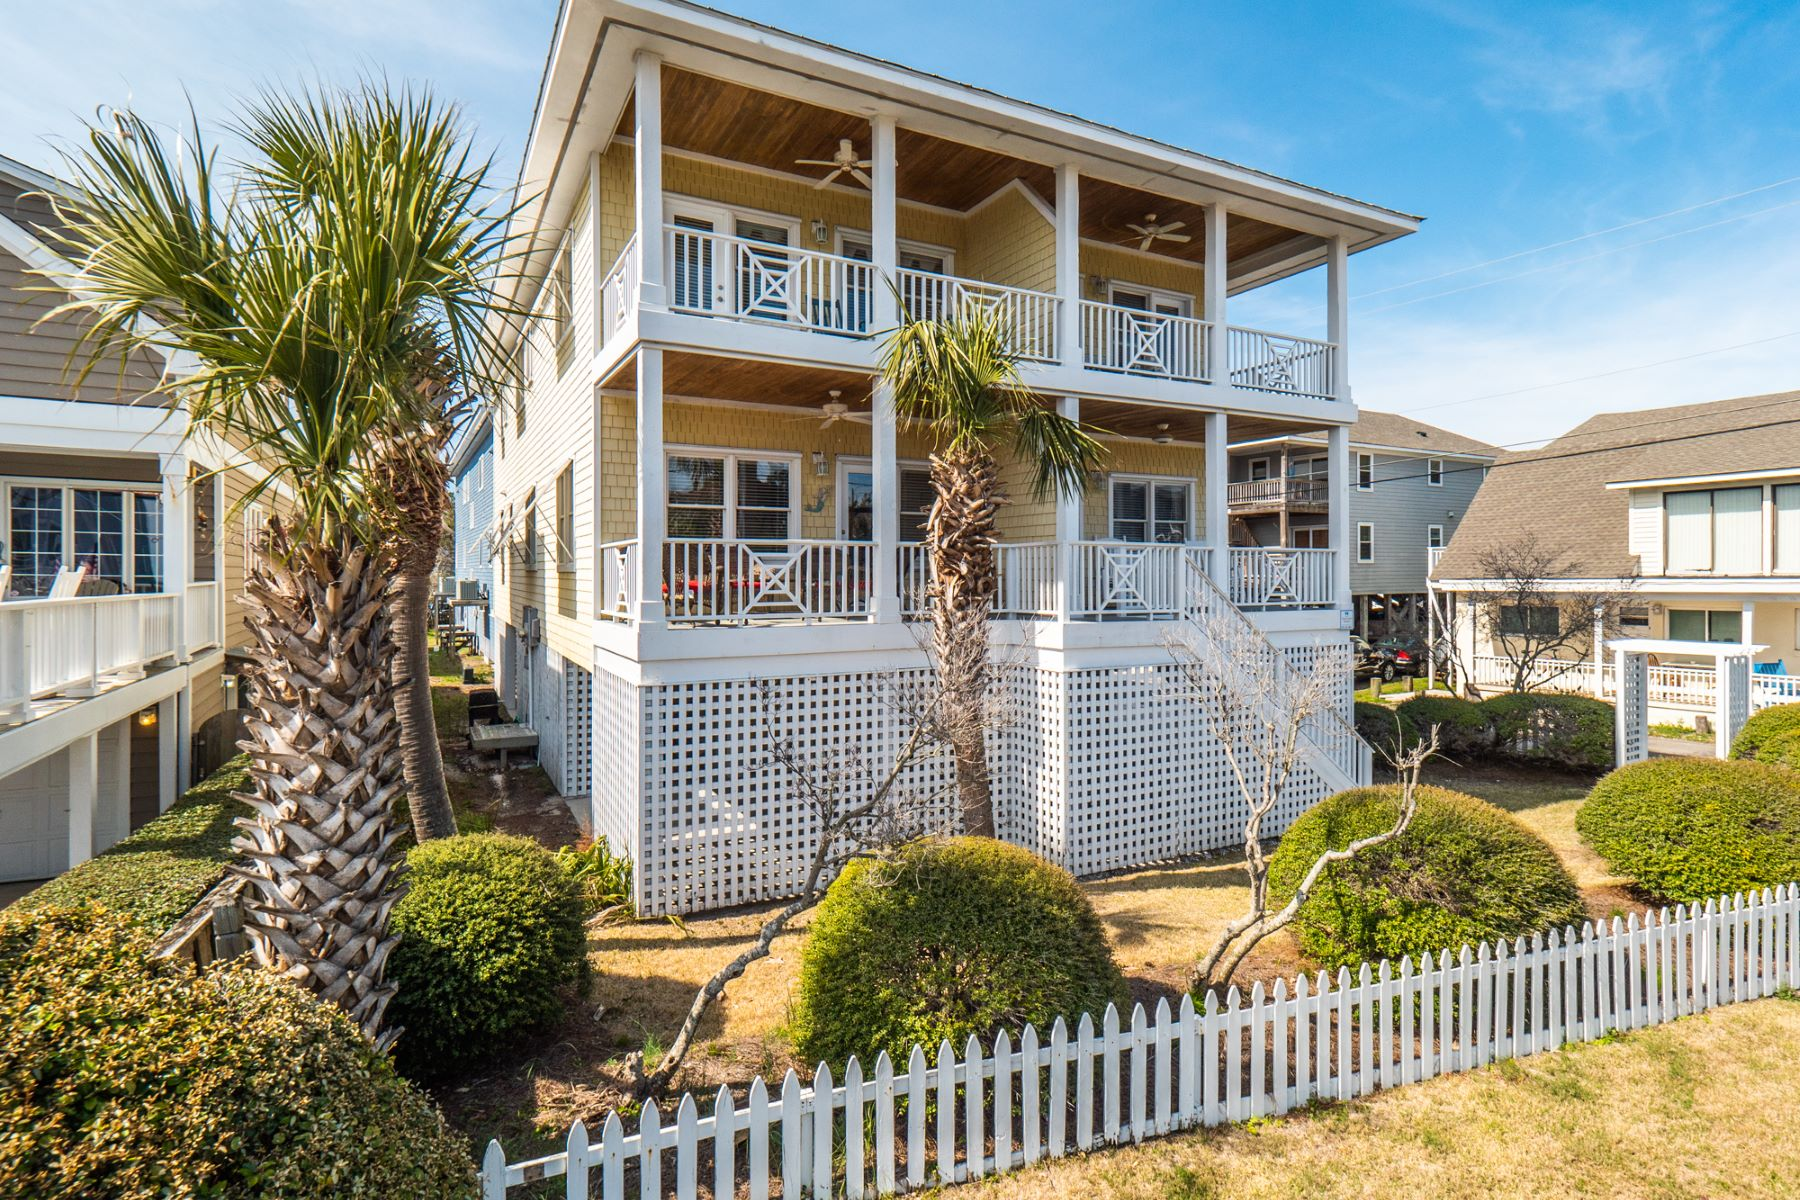 Single Family Home for Active at Completely Remodeled Exceptional Beach House 3 Meier Street B Wrightsville Beach, North Carolina 28480 United States